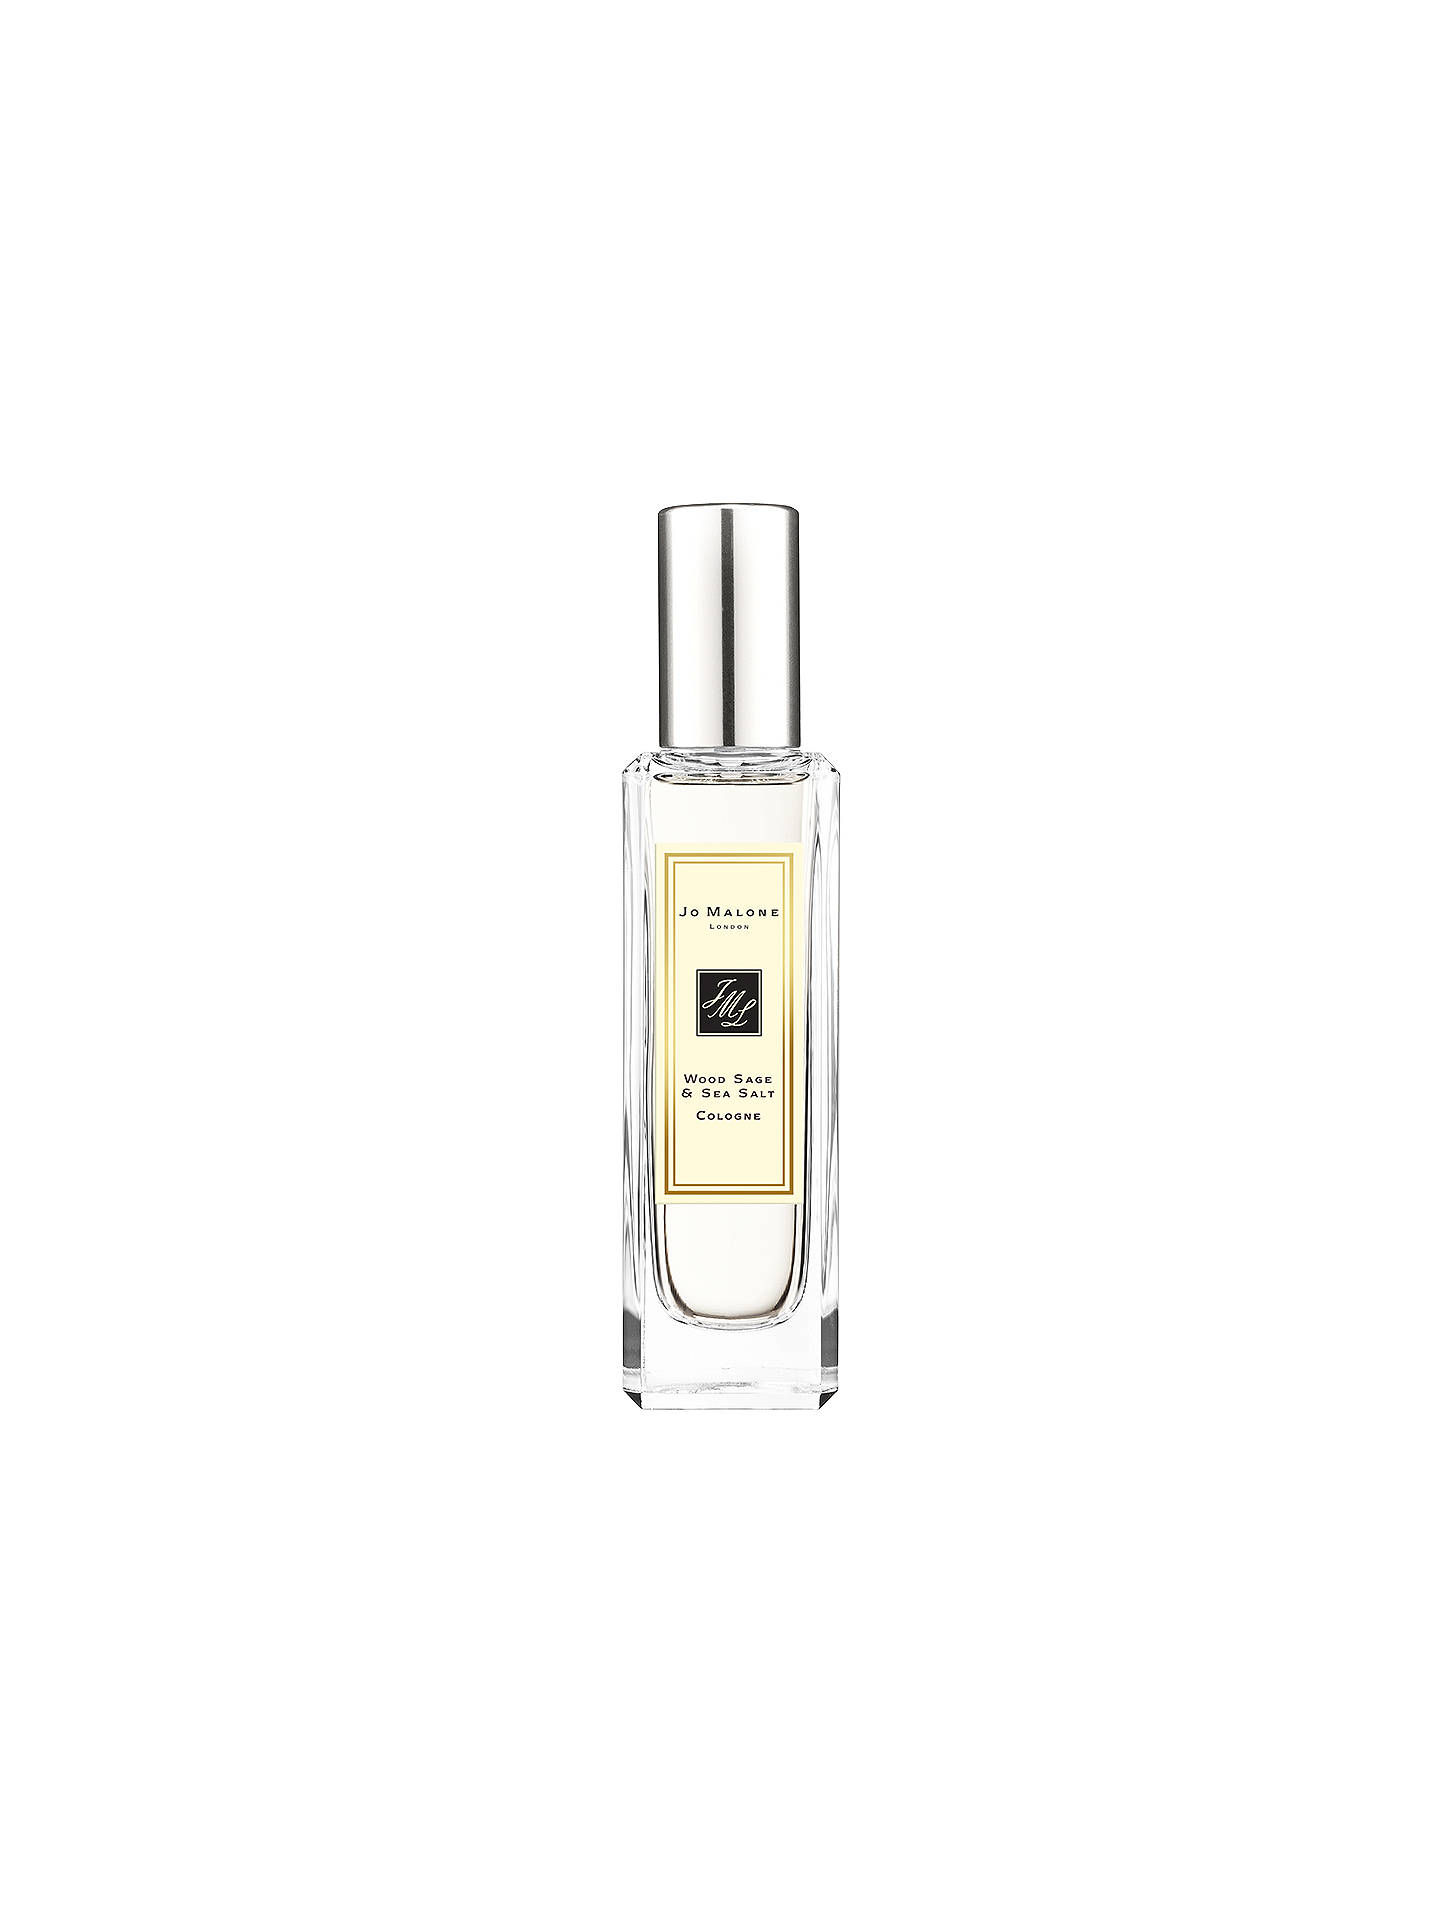 BuyJo Malone London Wood Sage & Sea Salt  Eau de Cologne, 30ml Online at johnlewis.com